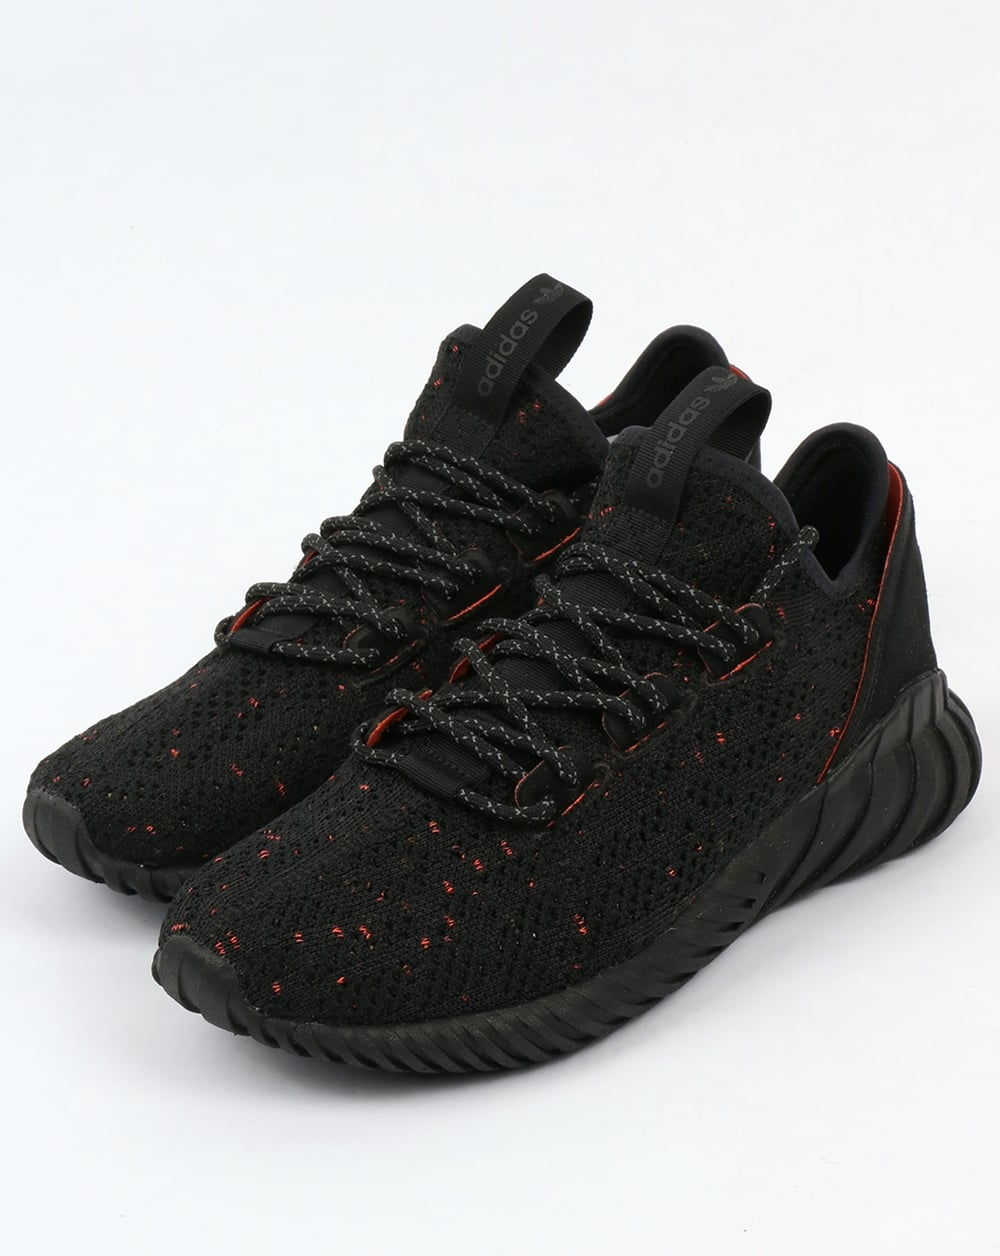 low priced 0686f 318fe Adidas Tubular Doom Sock Trainers Black/Black/Trace Olive